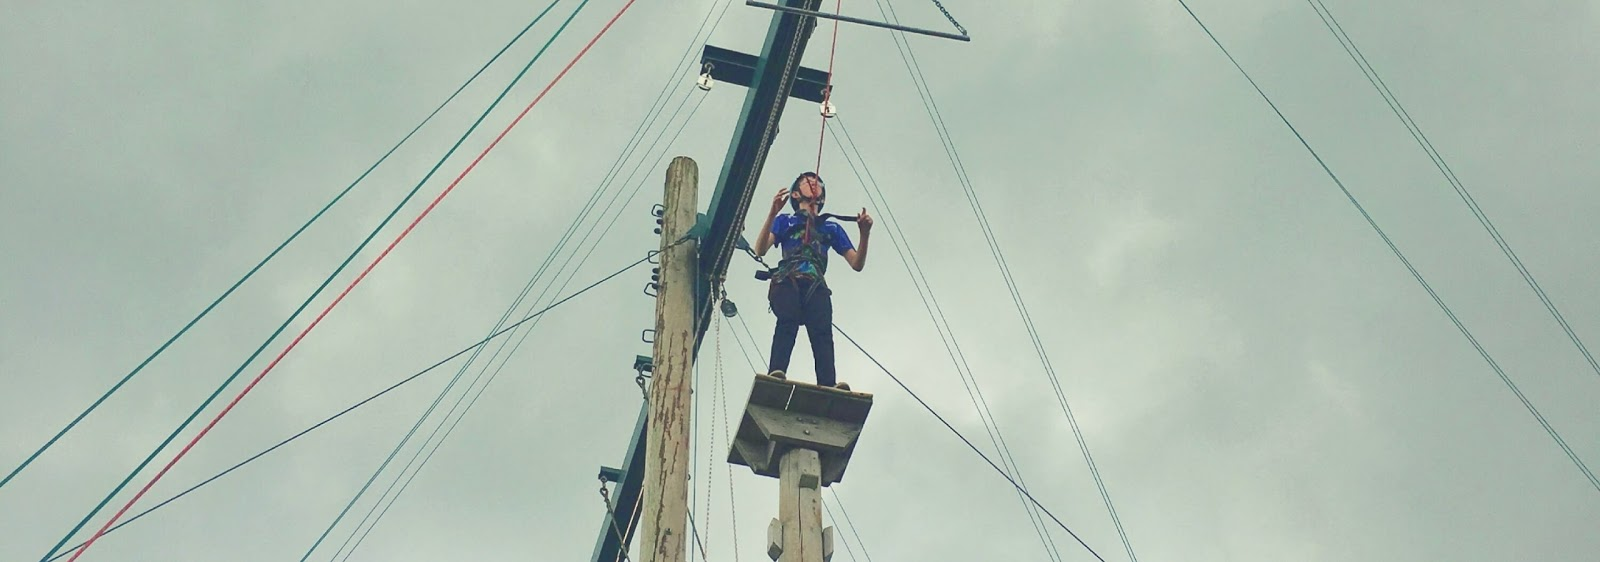 A 13 year old boy stands atop a small platform high in the air. He is connected to a rope and wearing a helmet. His hands are reaching forward as he prepares to jump to a handrail hanging in the air.